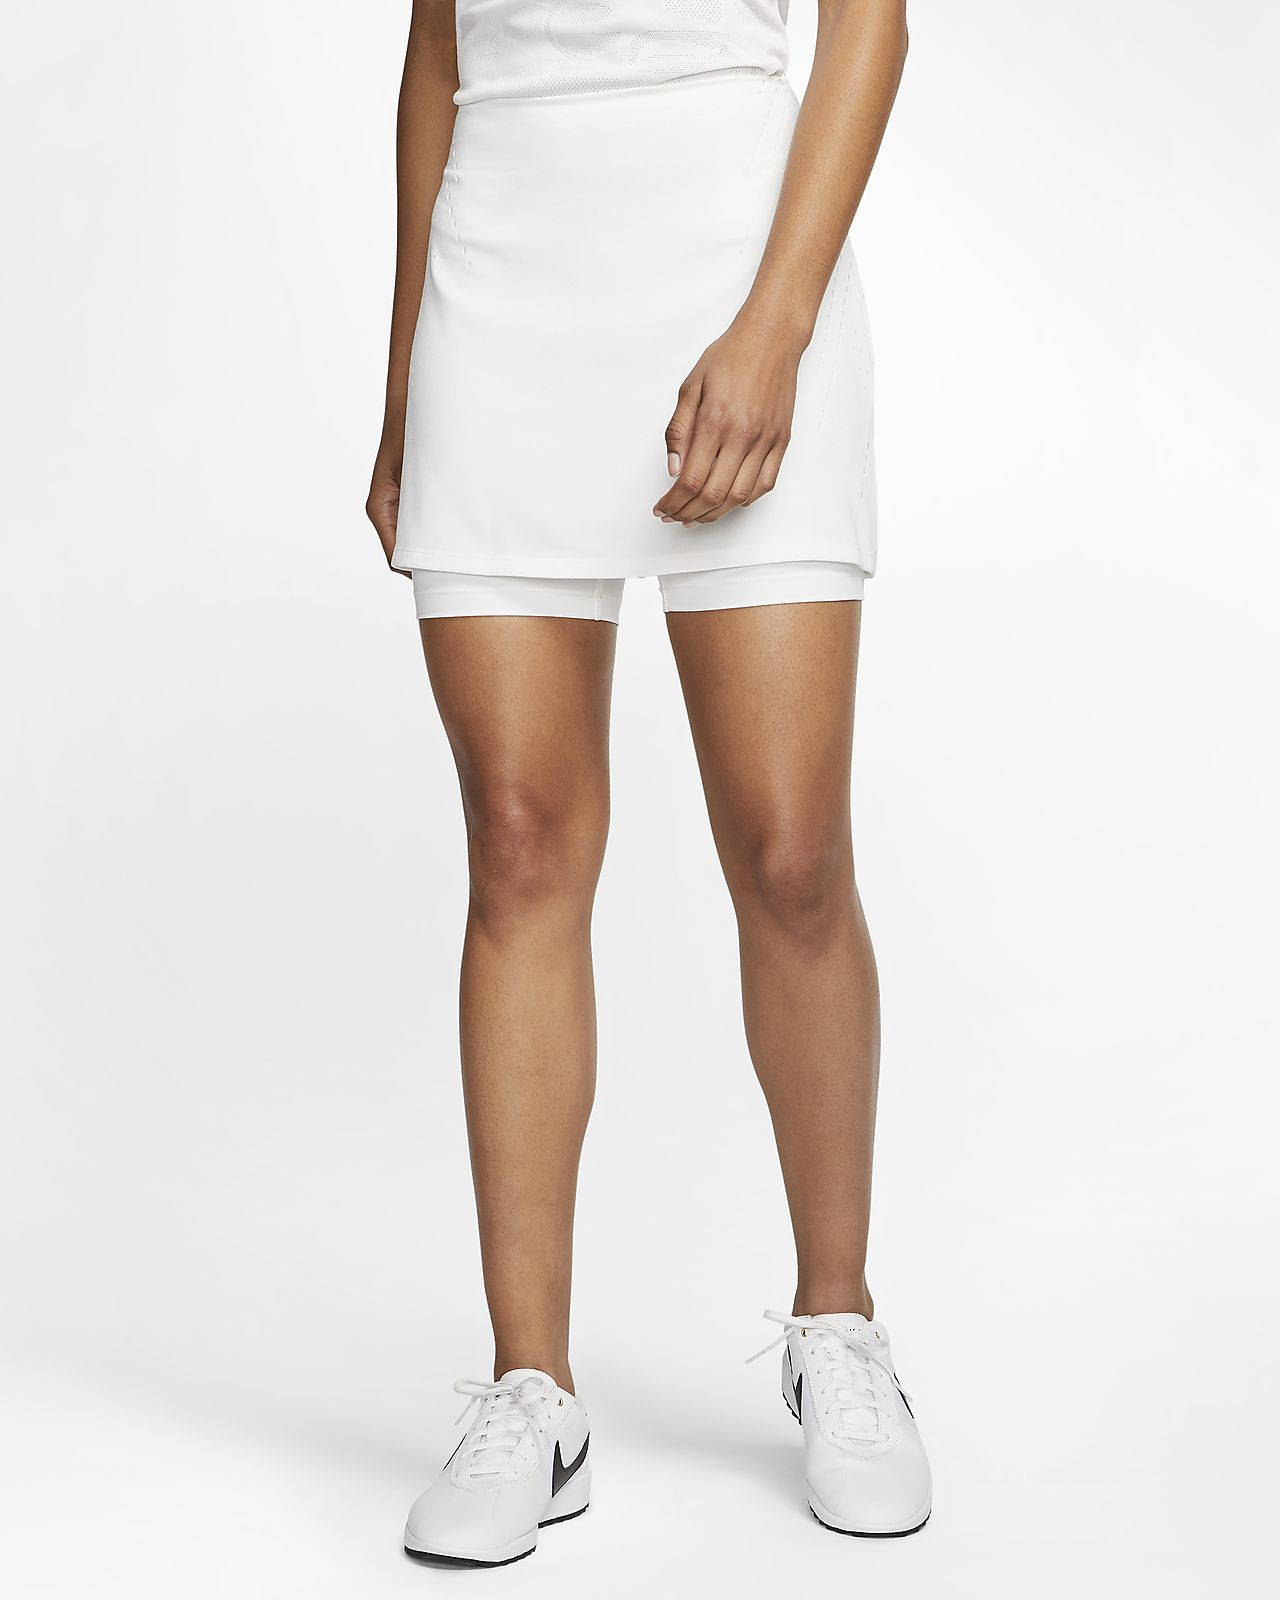 Nike Womens Dri-FIT Womens Perforated Tennis Skirt